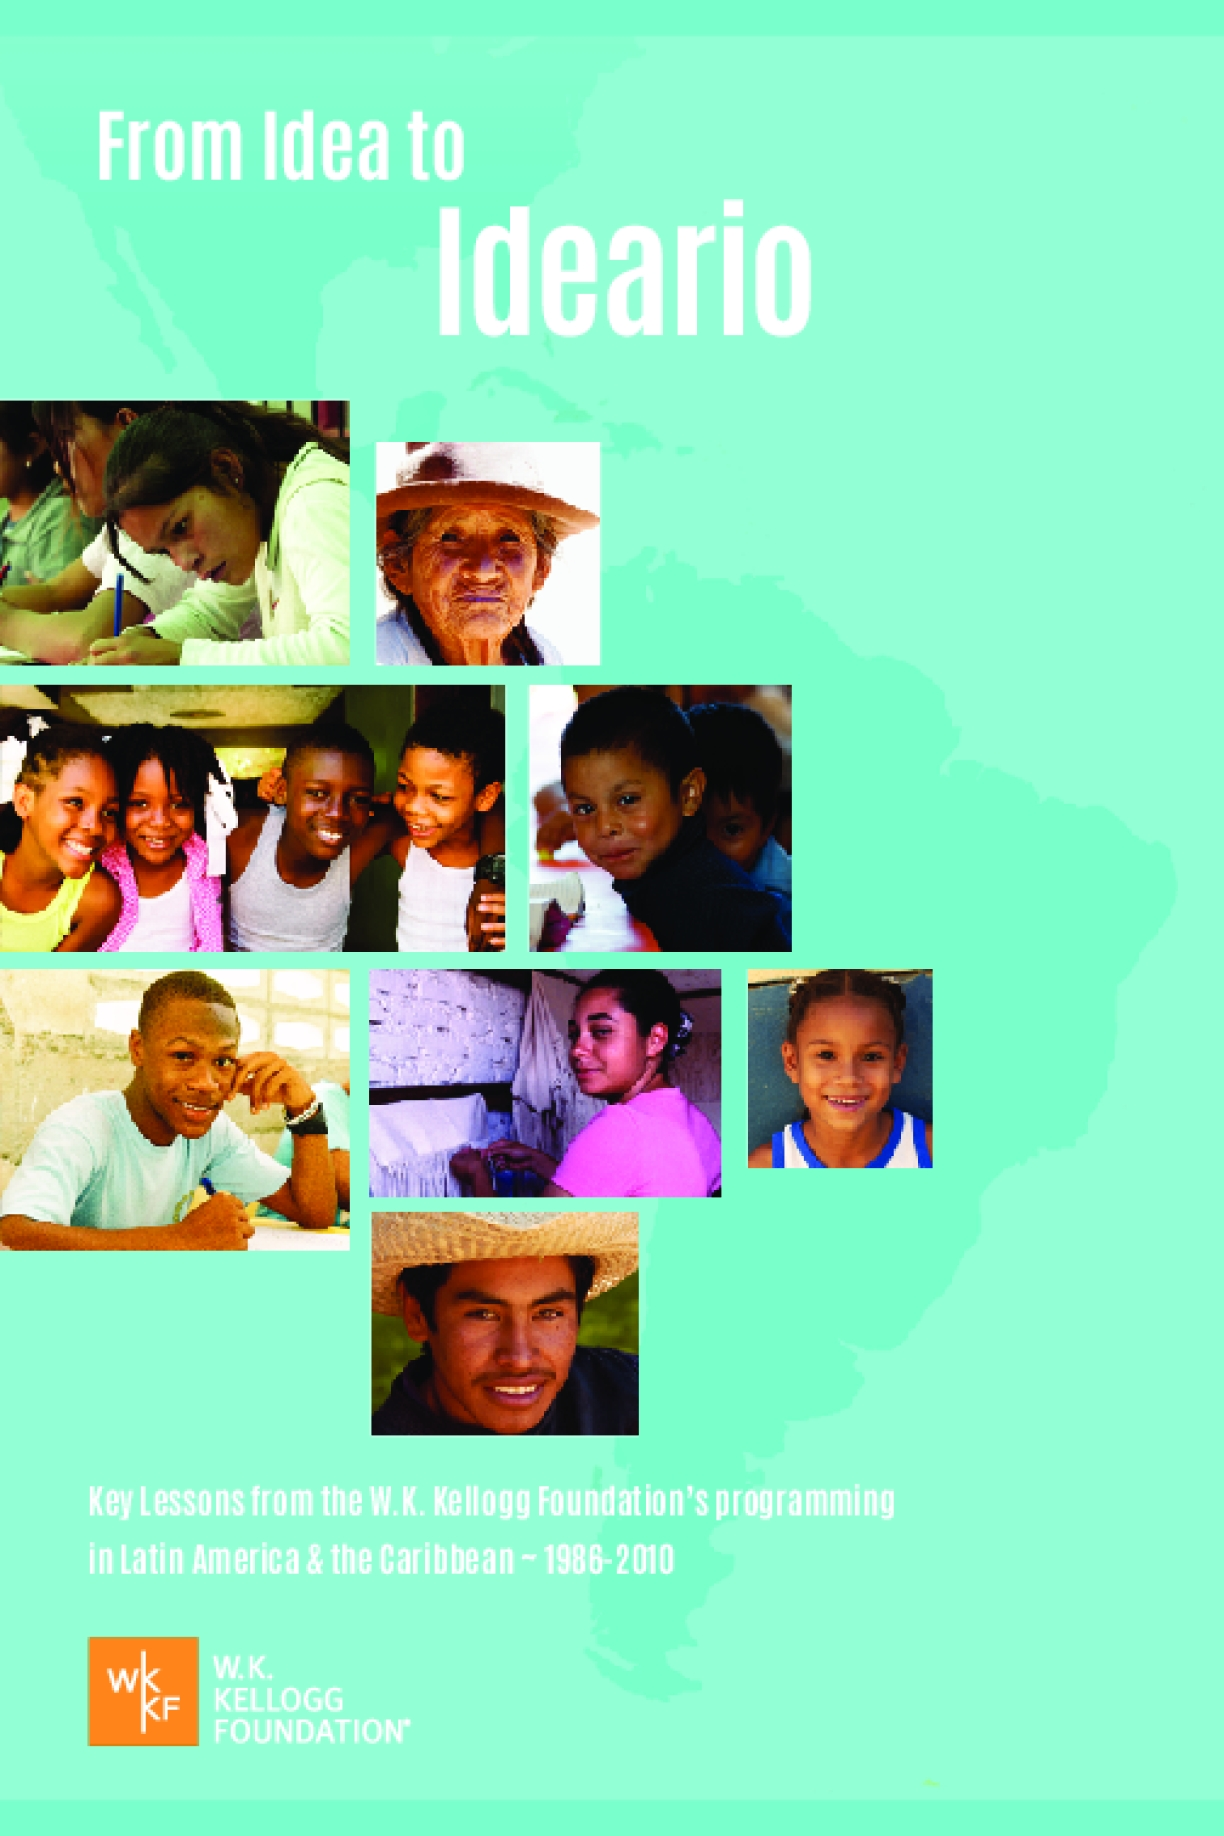 Learnings and Legacies from the Field: The W.K. Kellogg Foundation's legacy of opportunity, racial equity and civic renewal in Latin America and the Caribbean from 1986 - 2010 (Companion Summary) English